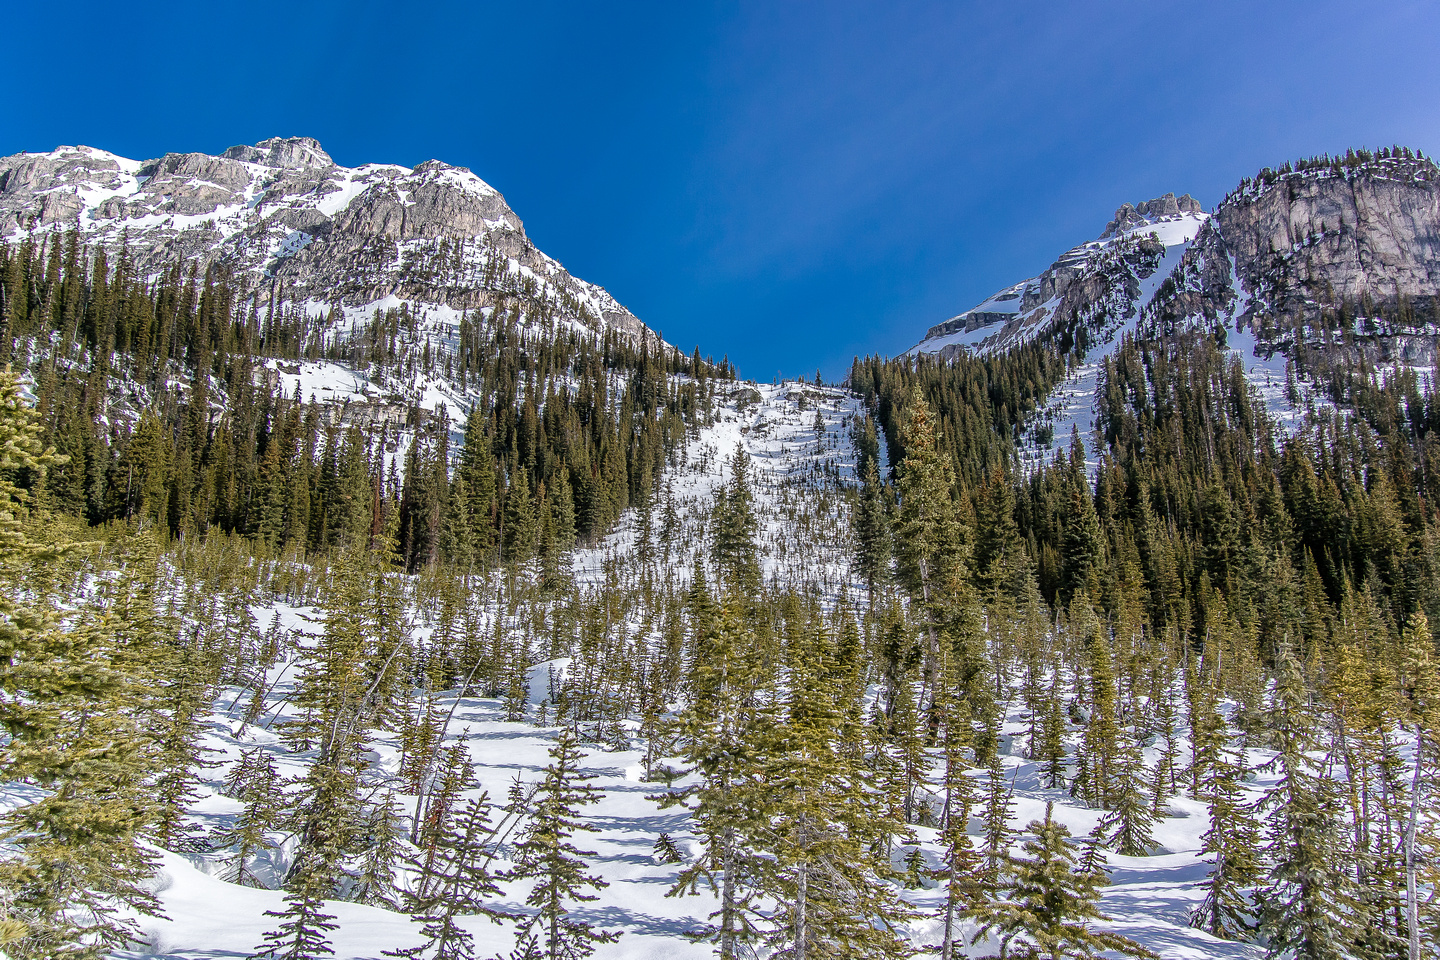 Looking up the avy slope that we used to gain the hanging valley.